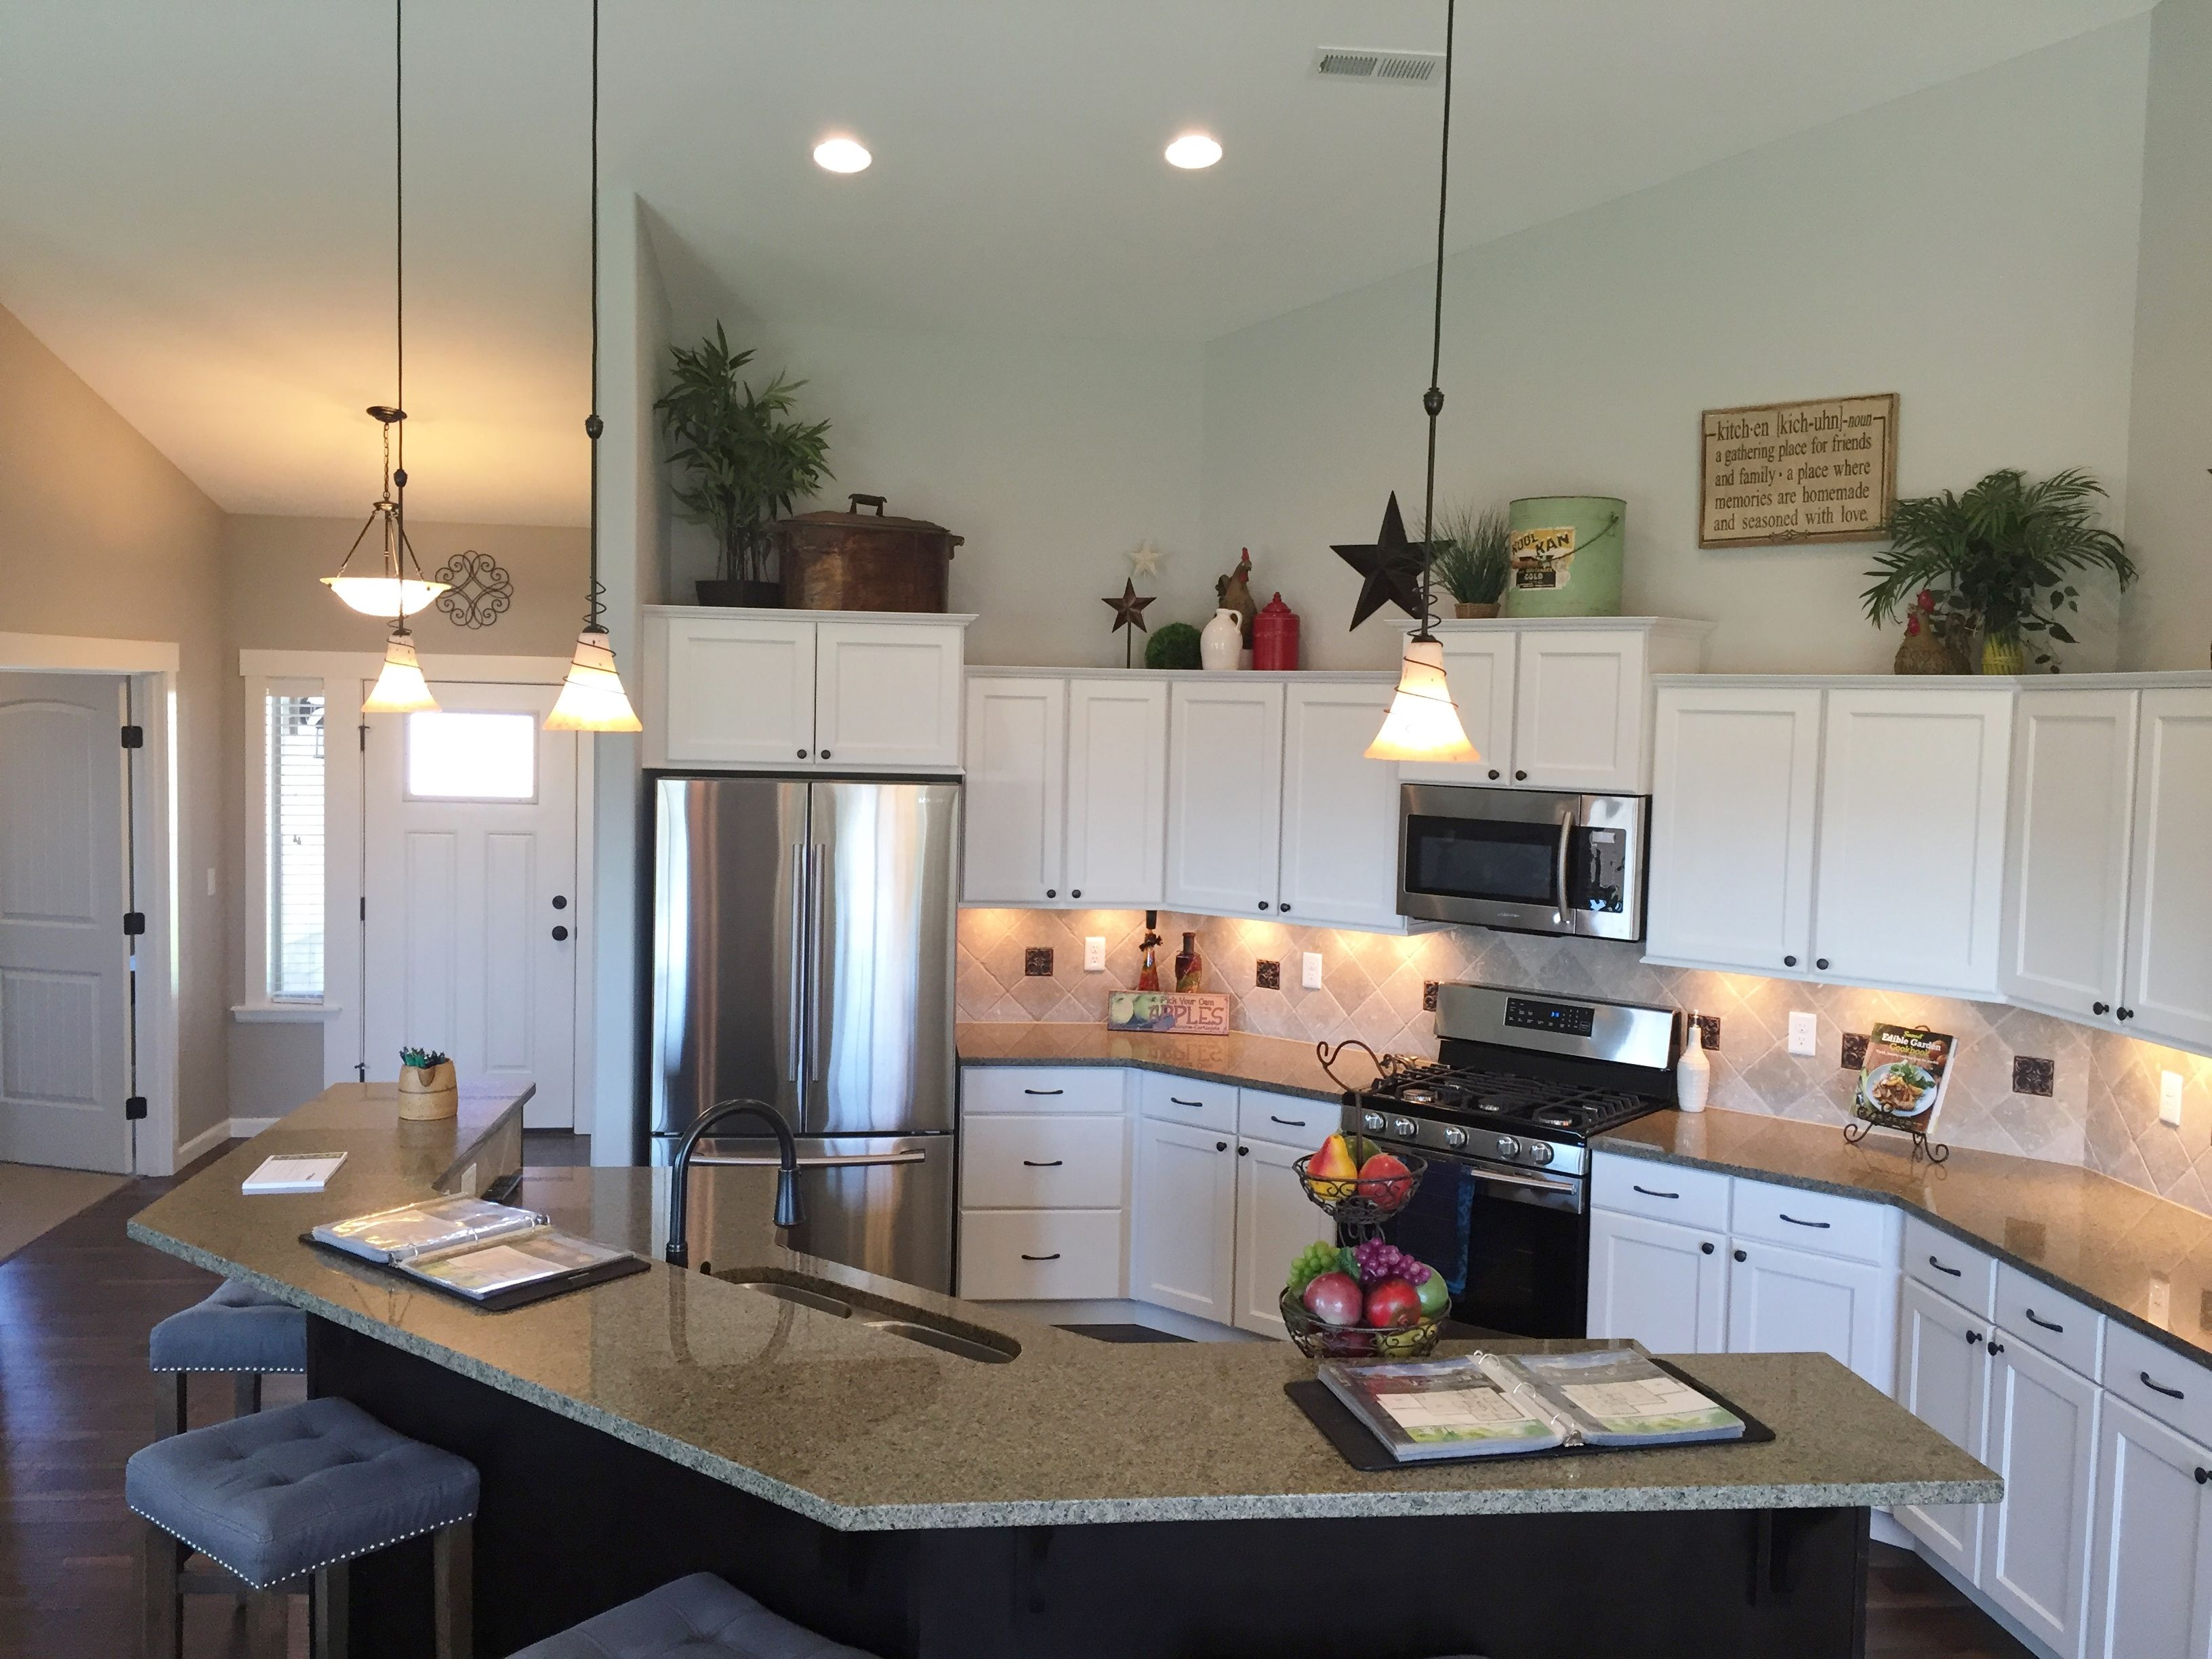 Kitchen Model Homes lexar model home 2057 kitchen | kitchen cabinets | pinterest